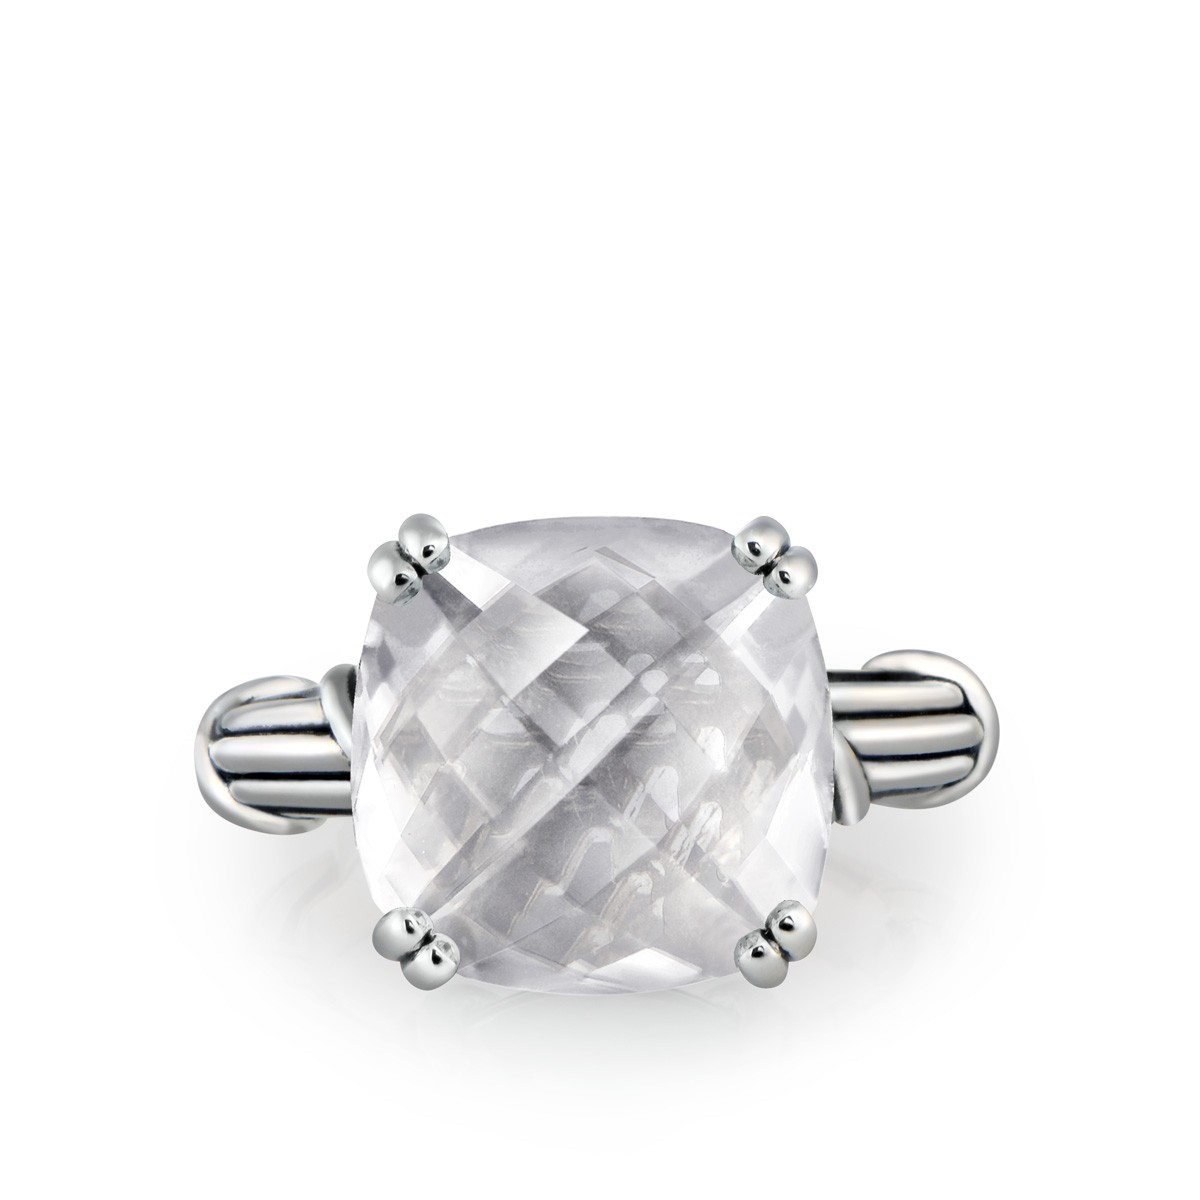 Fantasies Rock Crystal Cocktail Ring in sterling silver 14mm